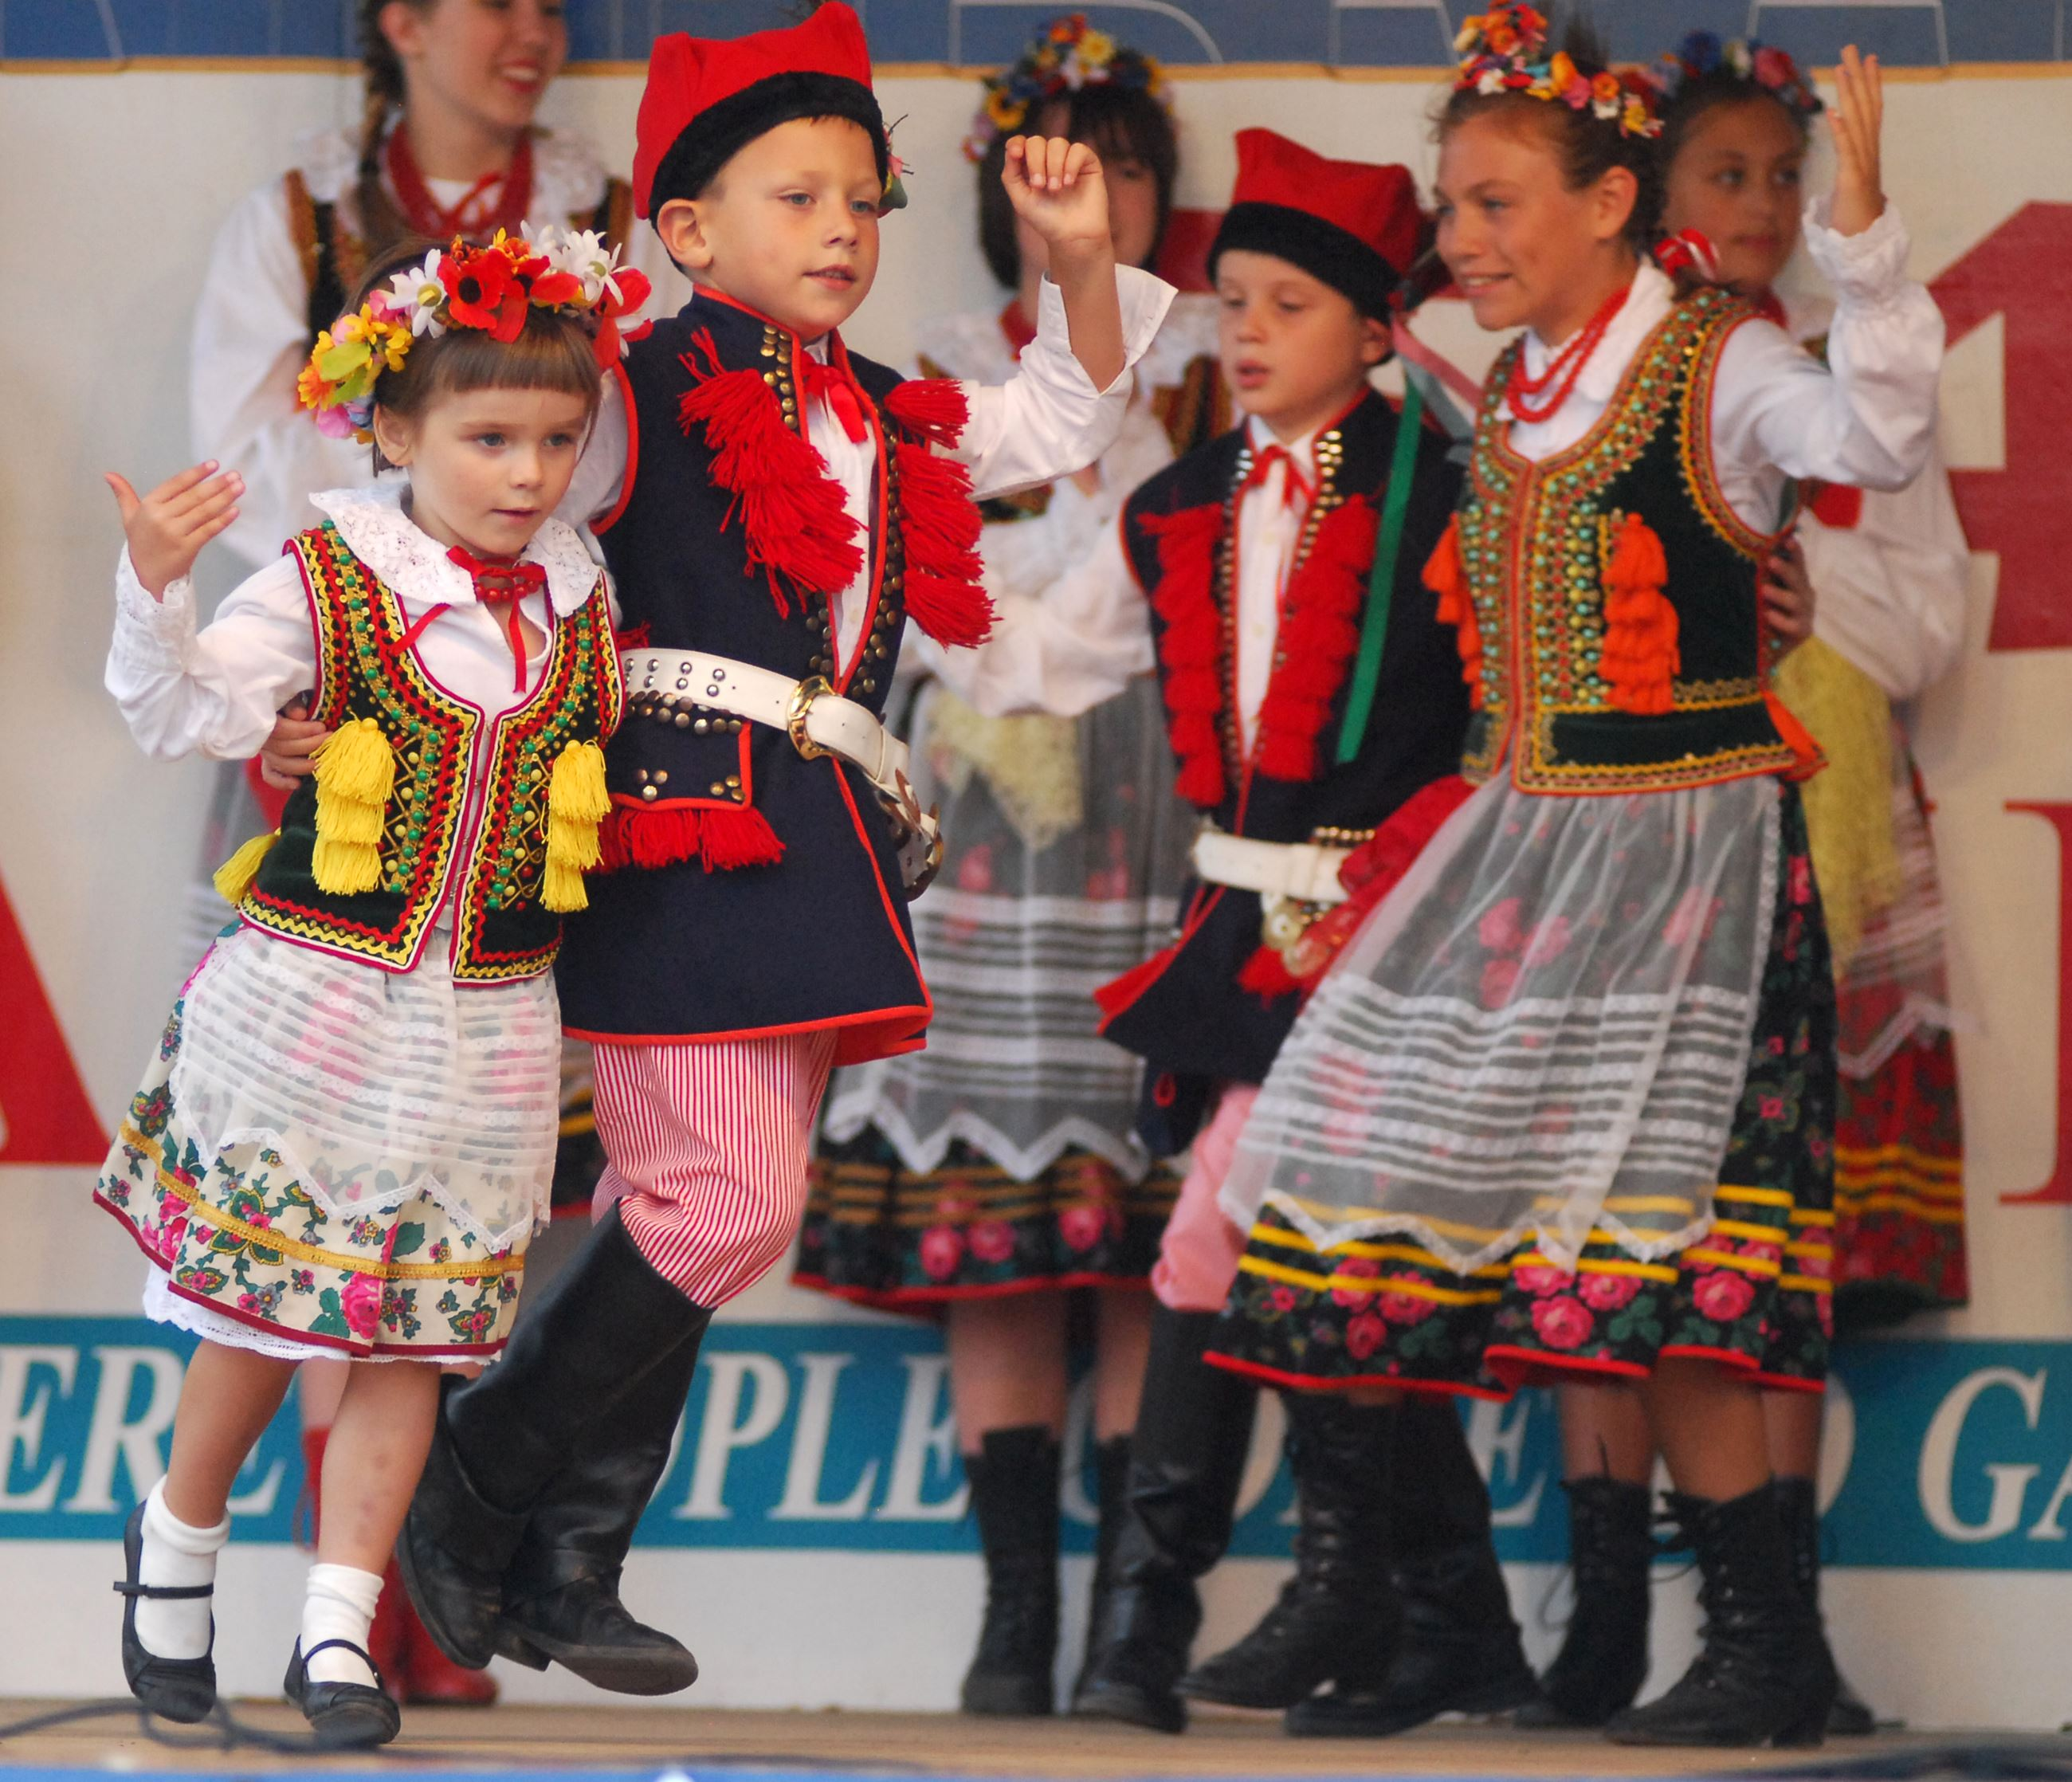 Children dance at the International Village